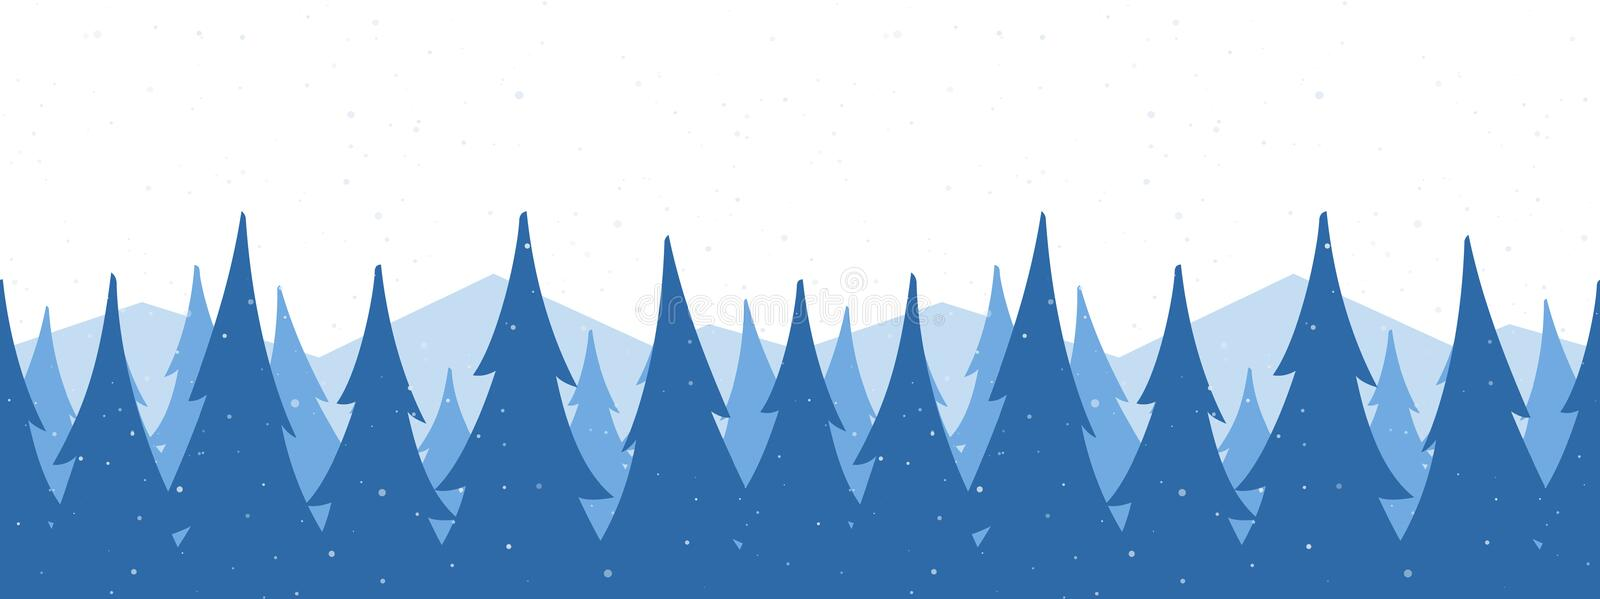 Vector illustration: Seamless mountains background. Template of Christmas greeting banner with winter snowy pine forest.  royalty free illustration